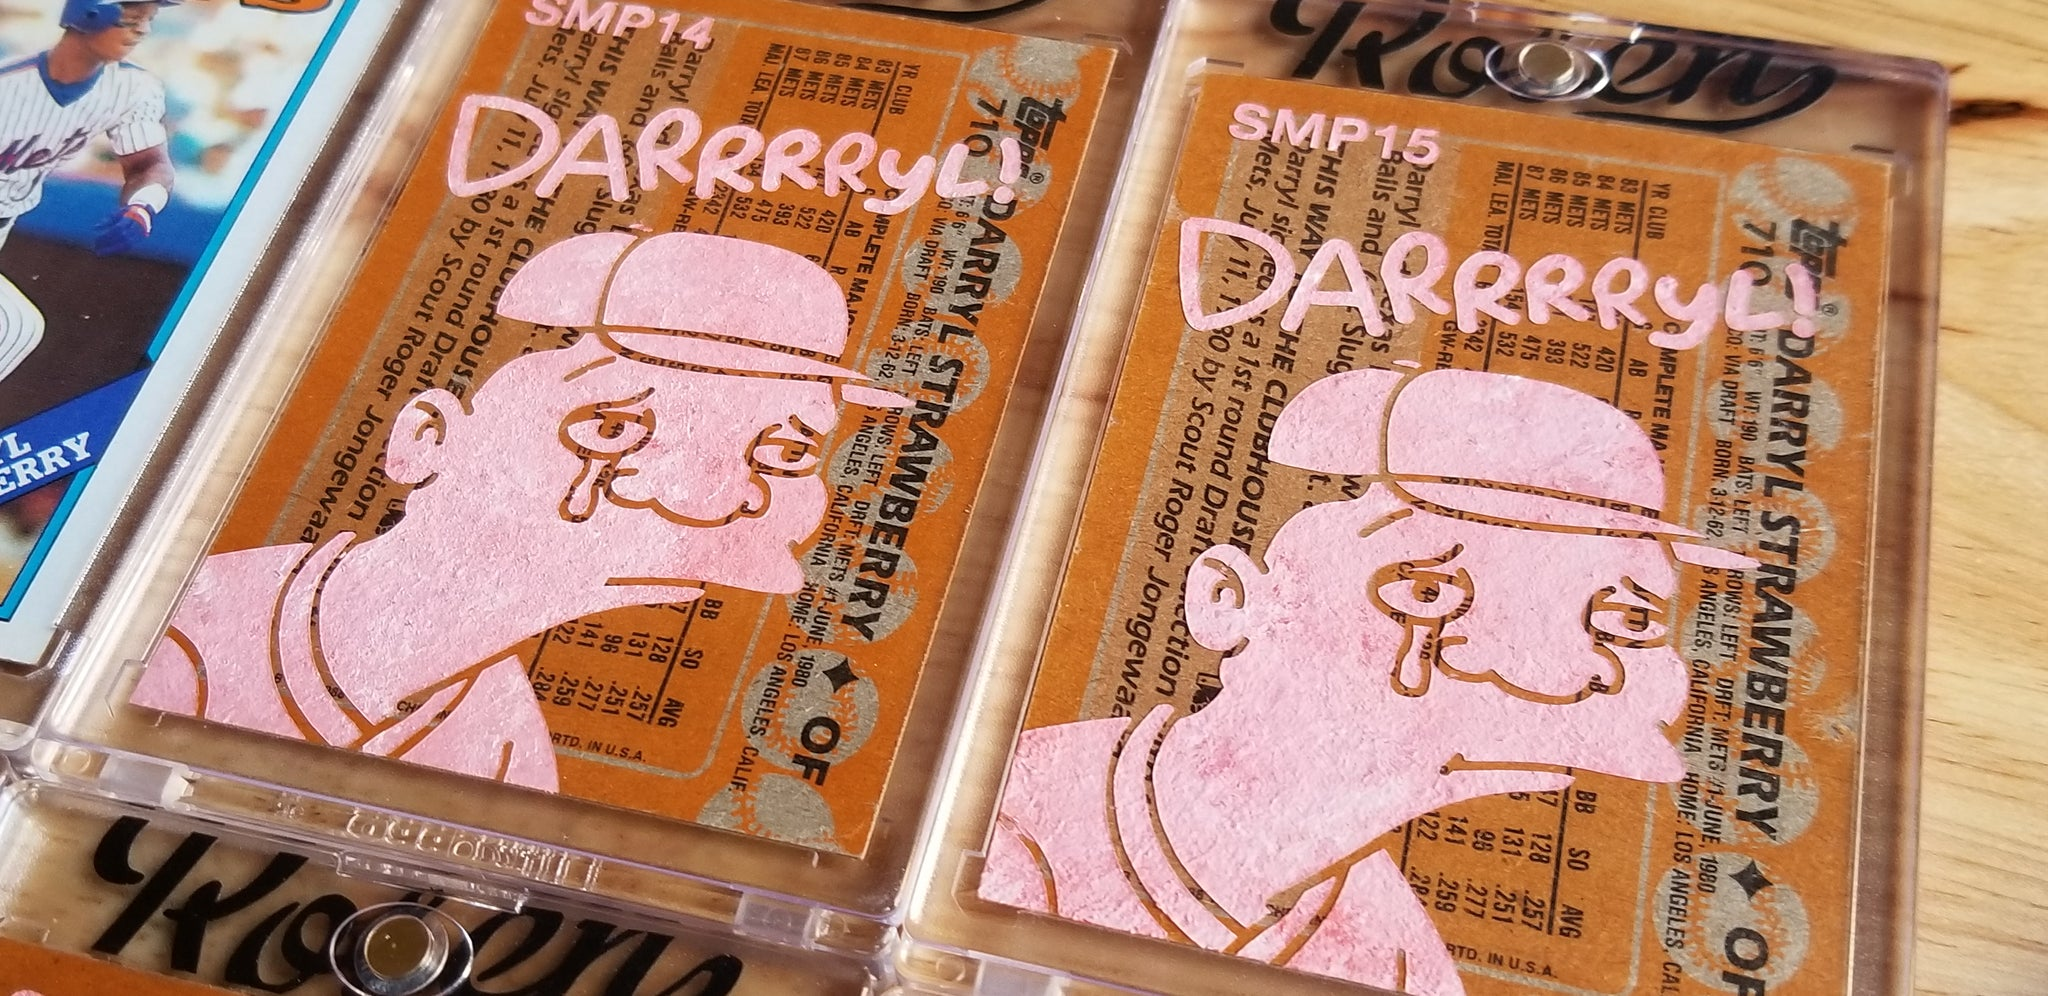 Baseball card art by Matthew Rosen  - Gum Stick Collector Cards - Darrrryl